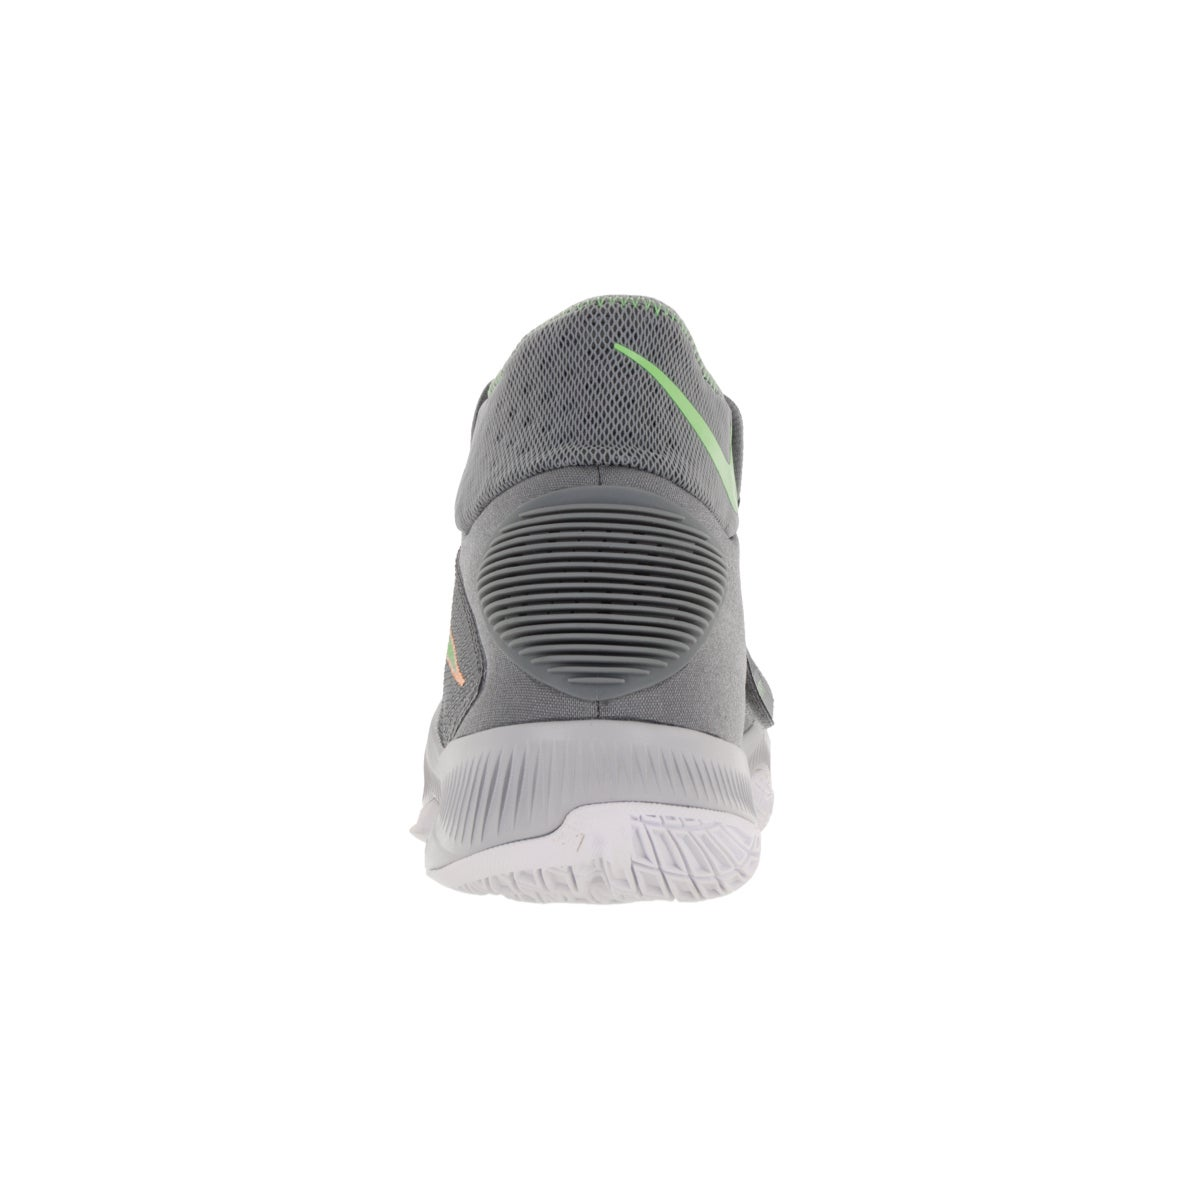 38f92b3fe0b Shop Nike Men s Zoom Hyperrev 2016 Cool Grey Action Green Wlf Gry Basketball  Shoe - Free Shipping Today - Overstock - 13394674